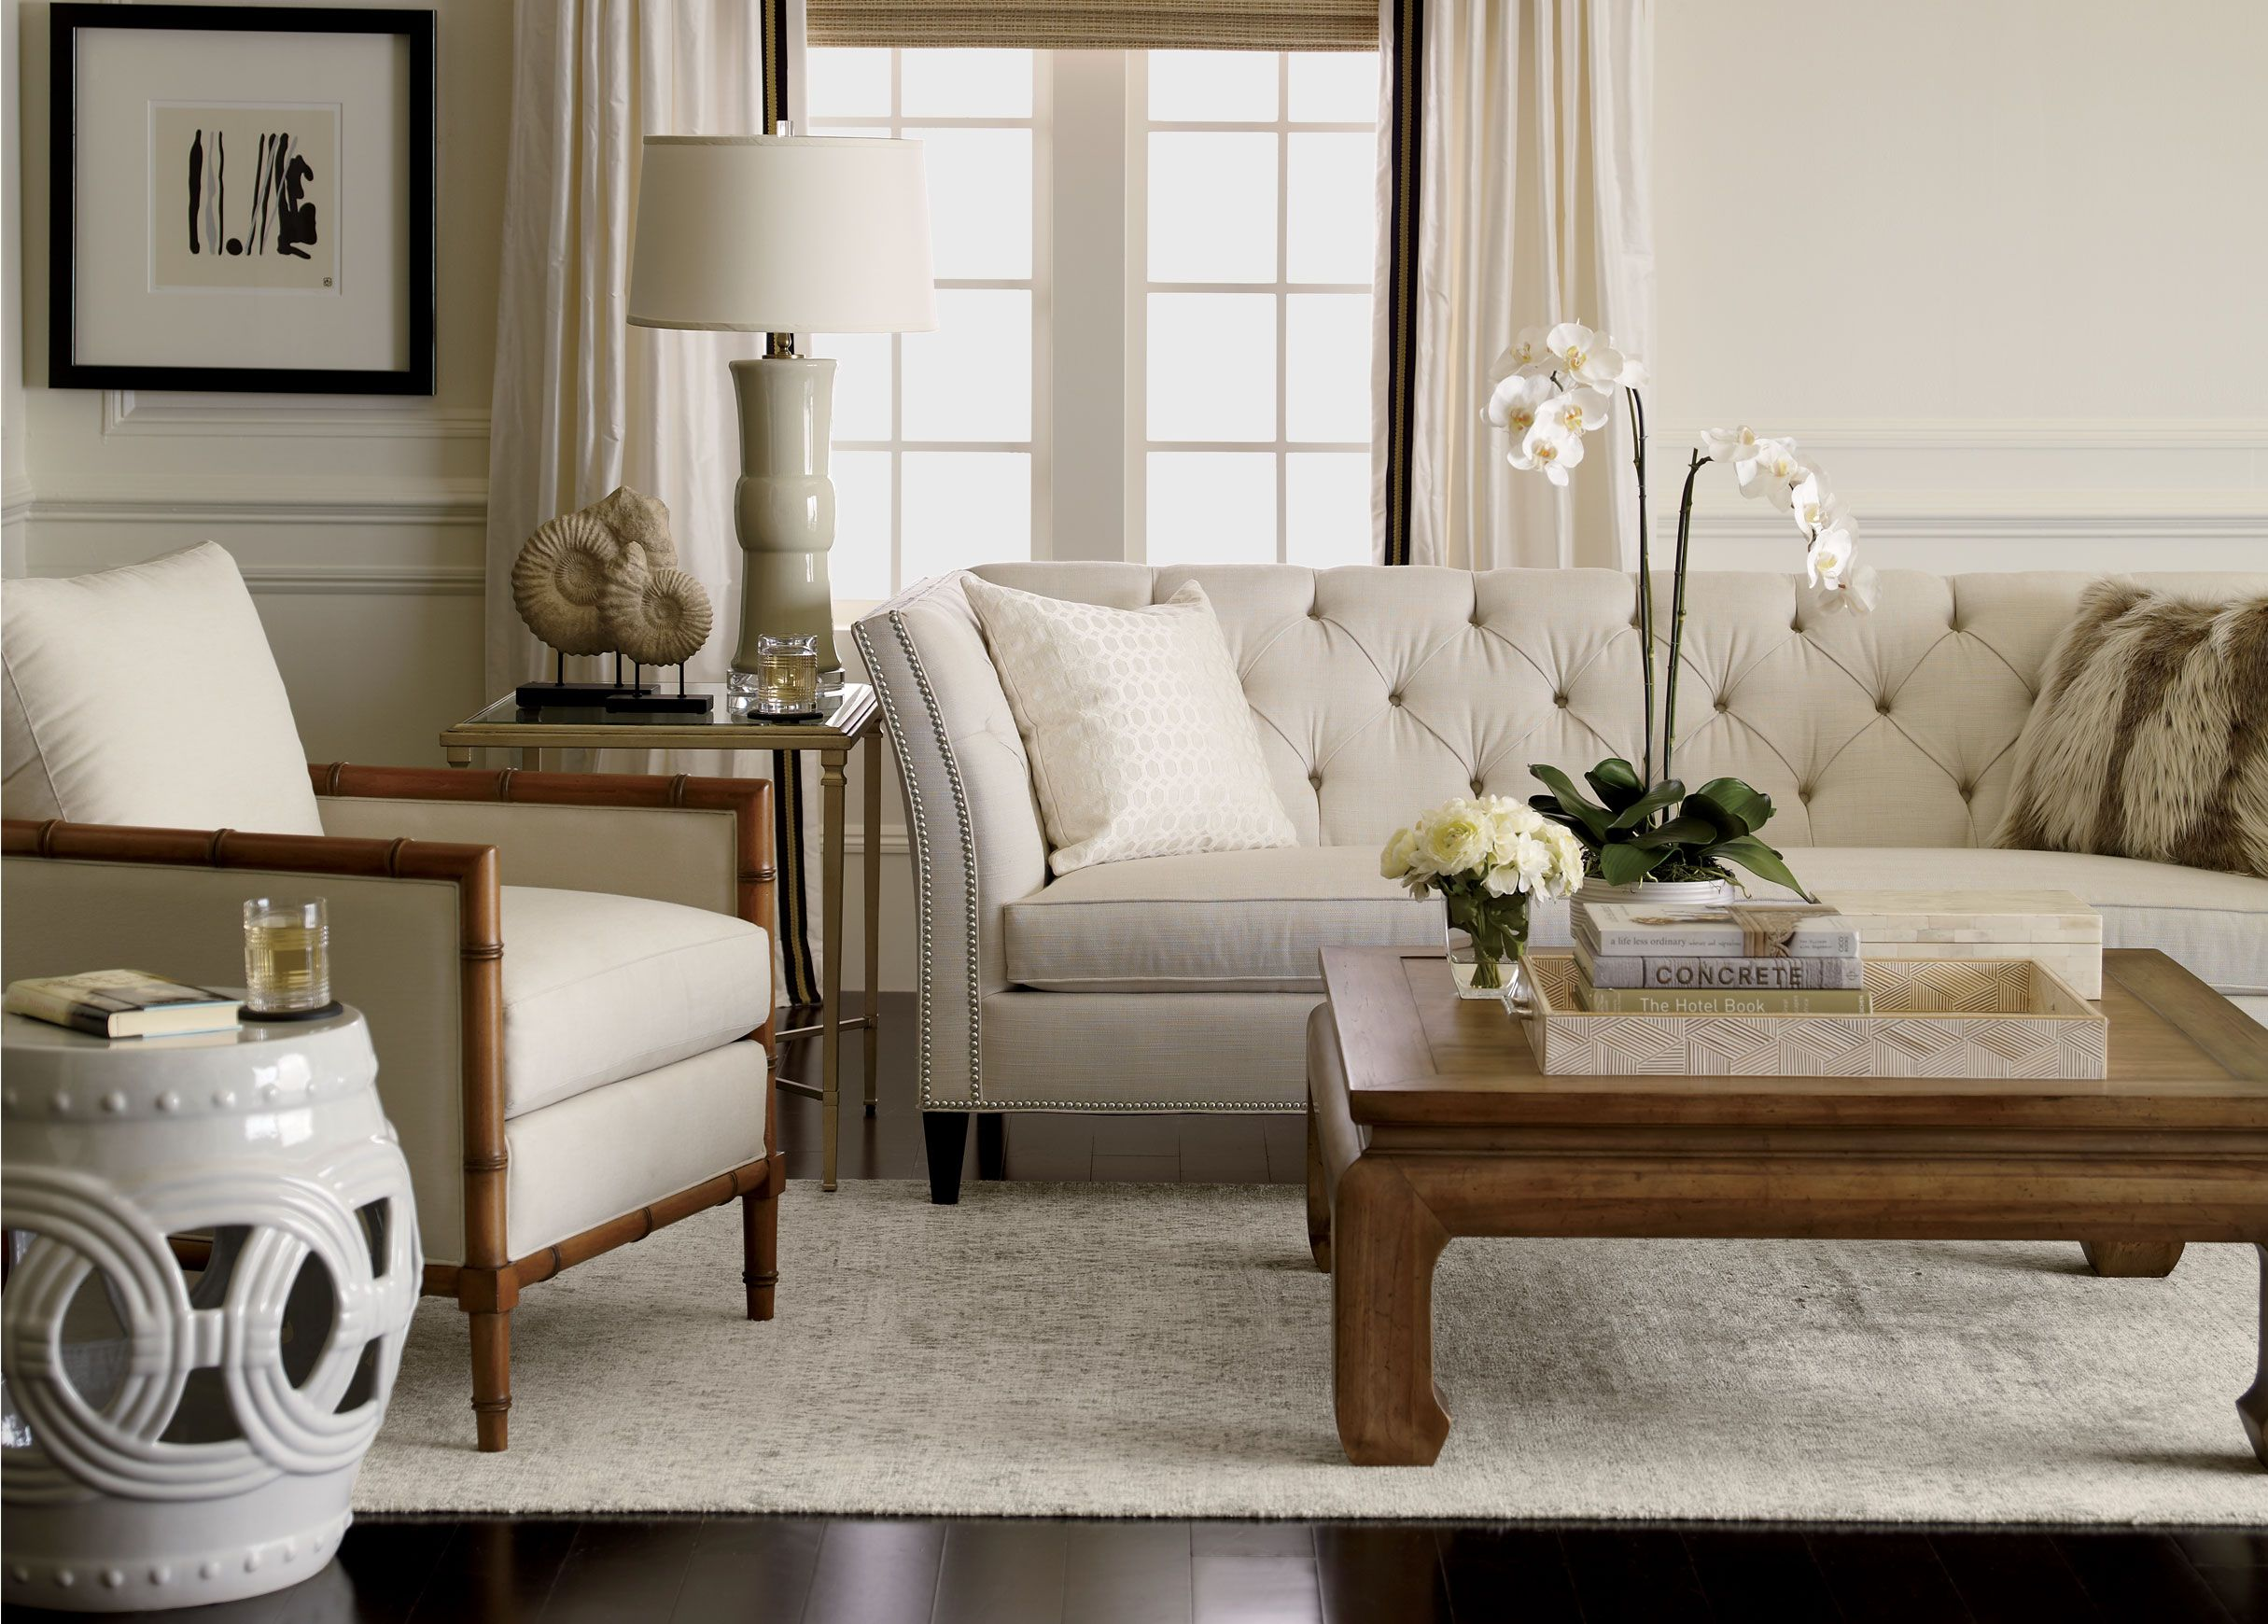 Classic neutral meets natural in a comfortably modern mix